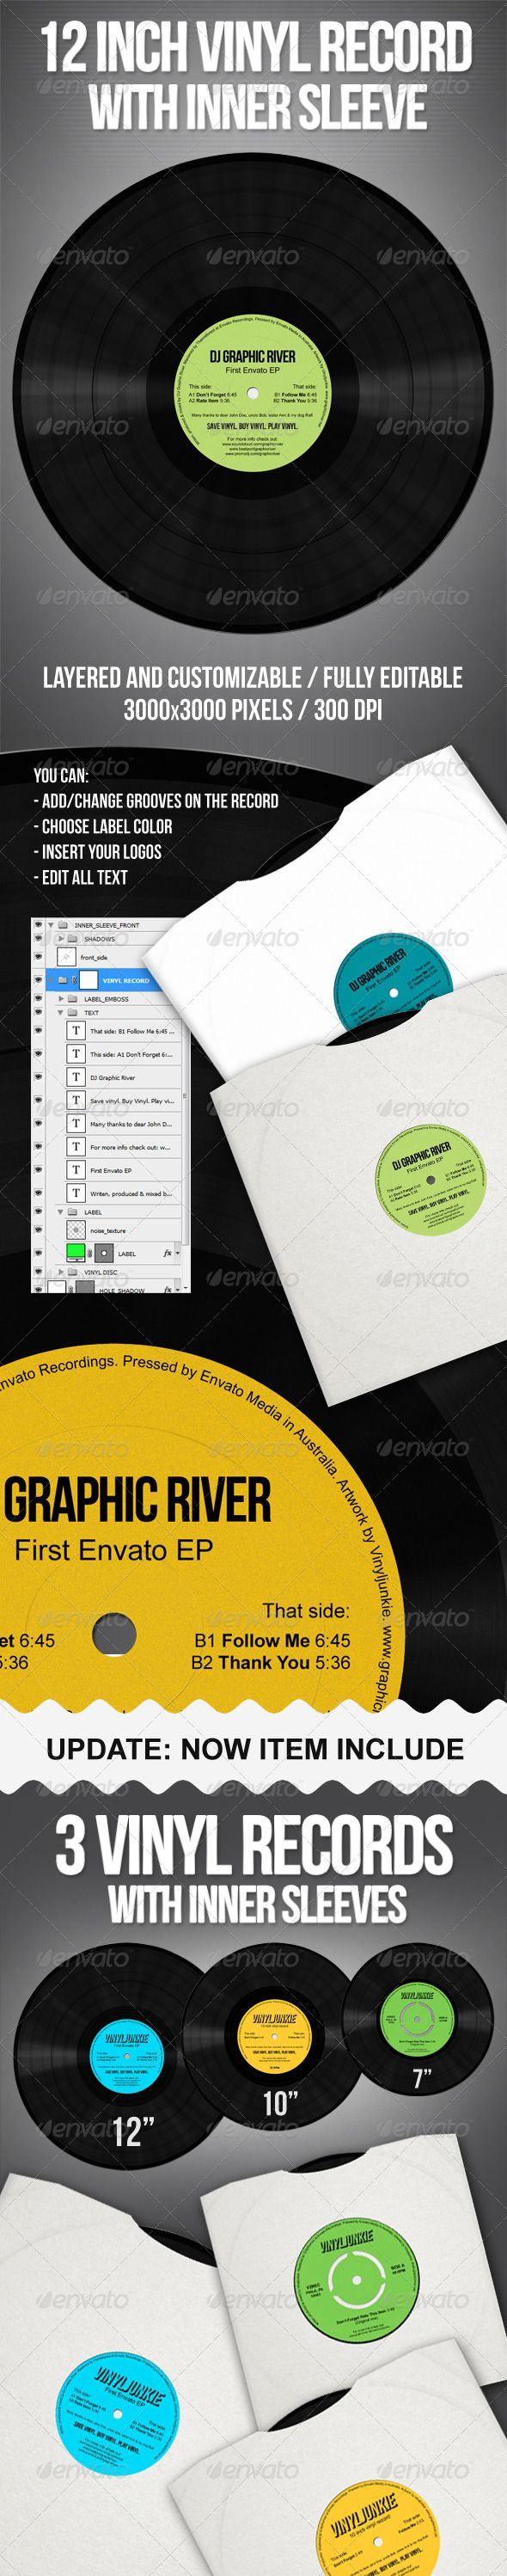 Realistic Vinyl Records With Inner Sleeves Dj Website Templates Vinyl Records Best Resume Template